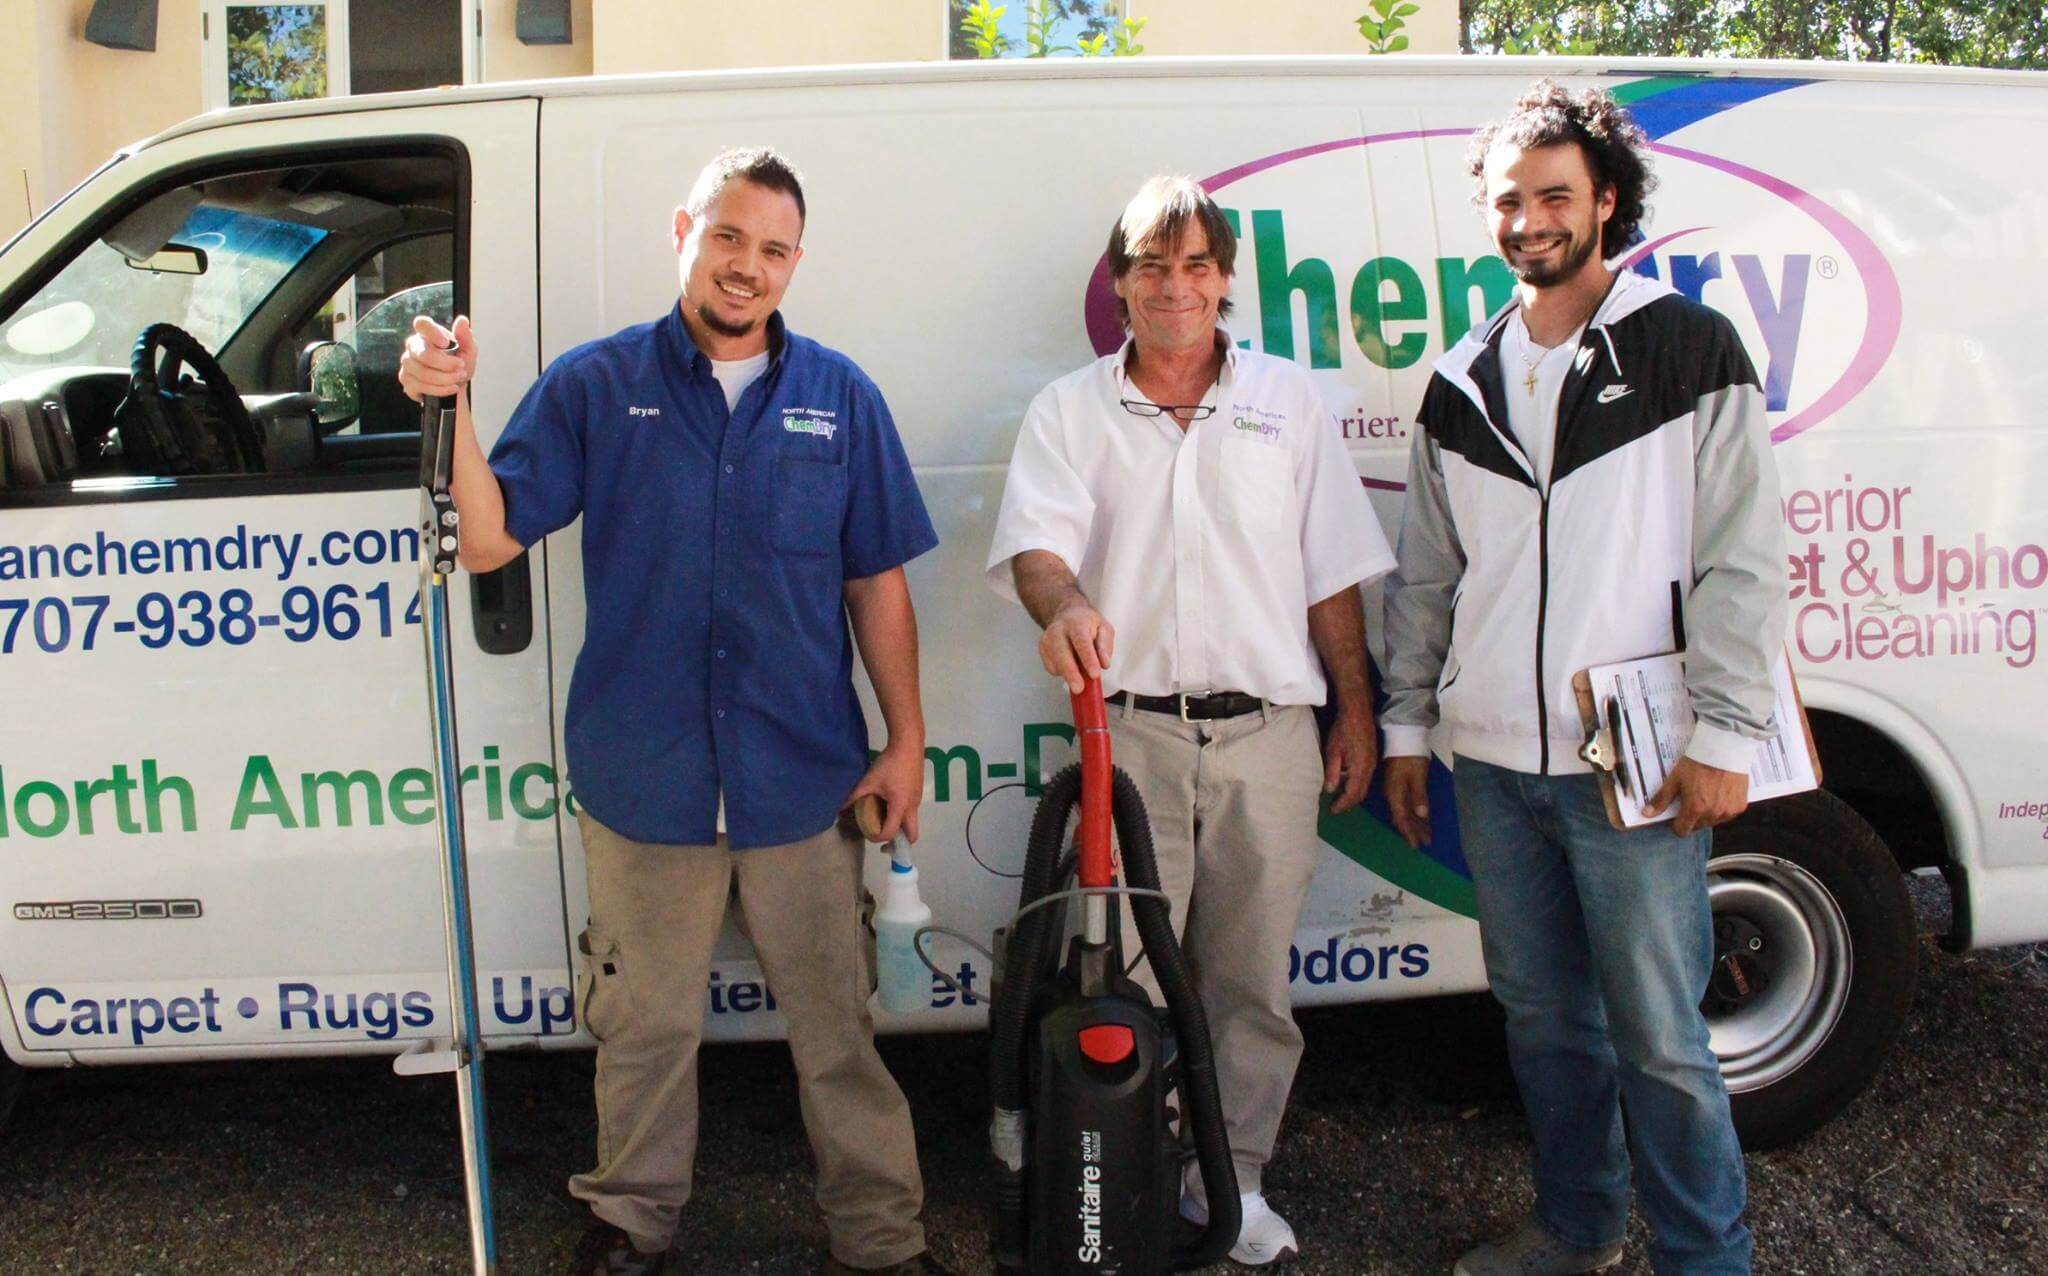 The Sonoma County carpet cleaning team